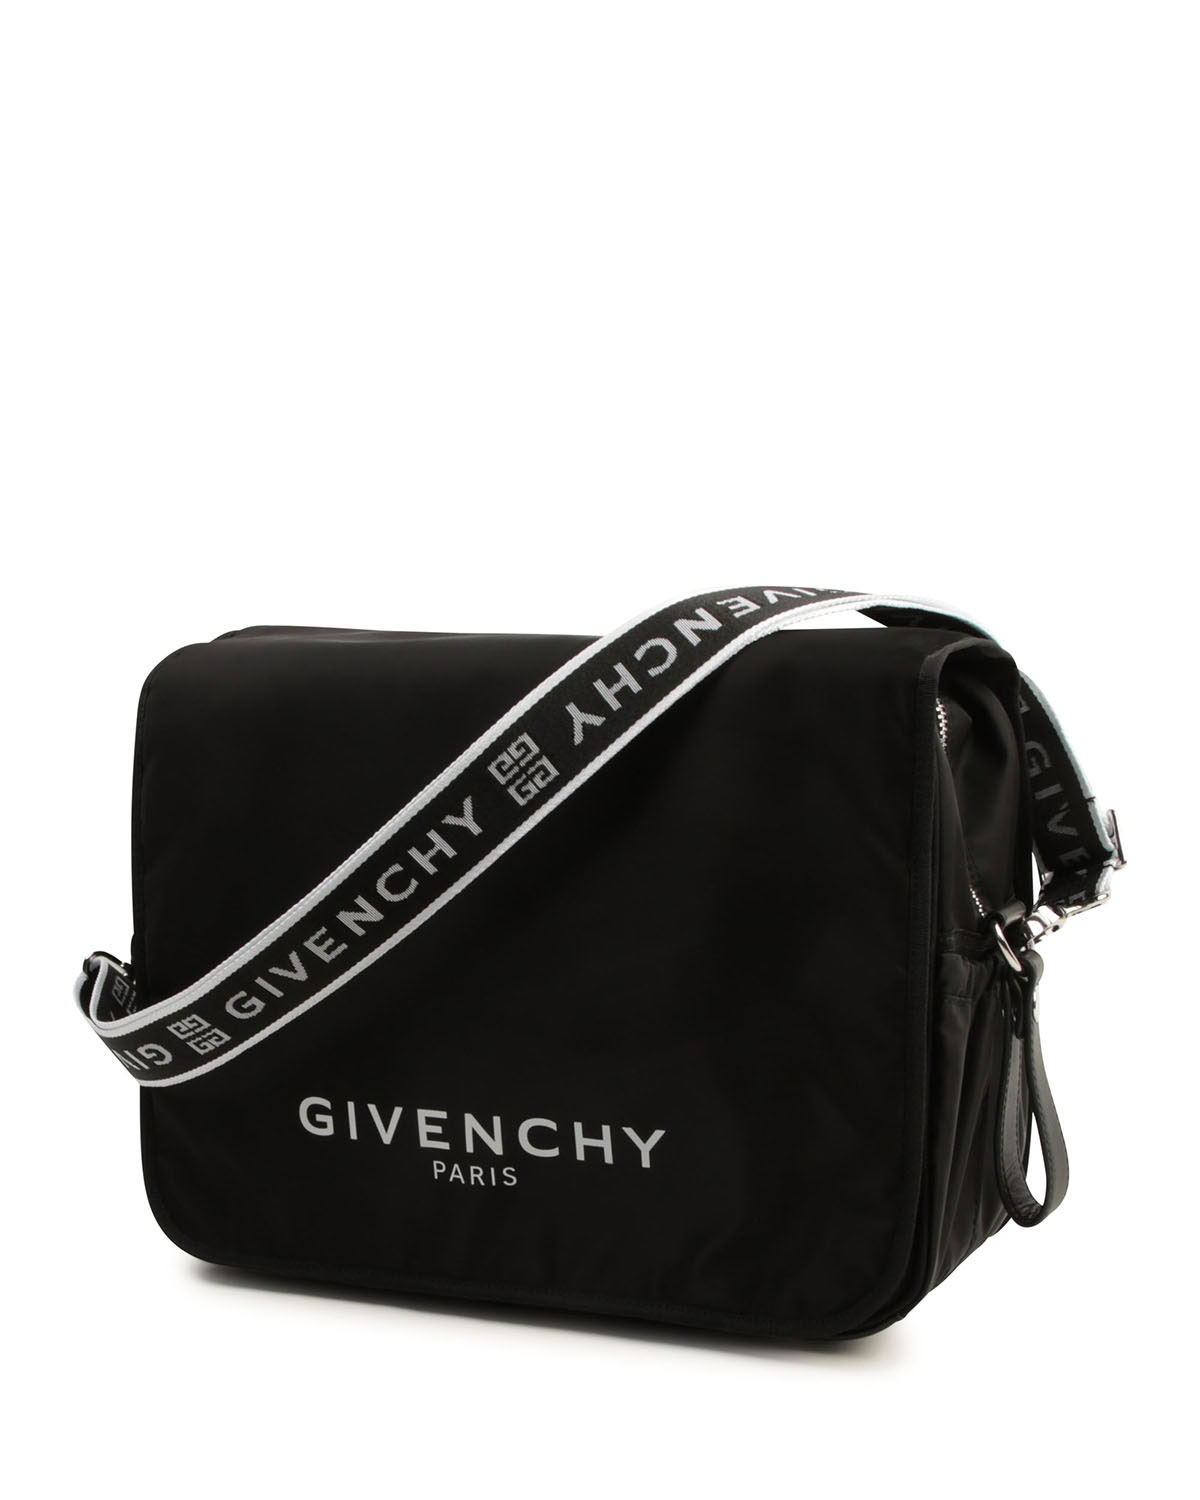 Givenchy Logo Strap Diaper Changing Bag